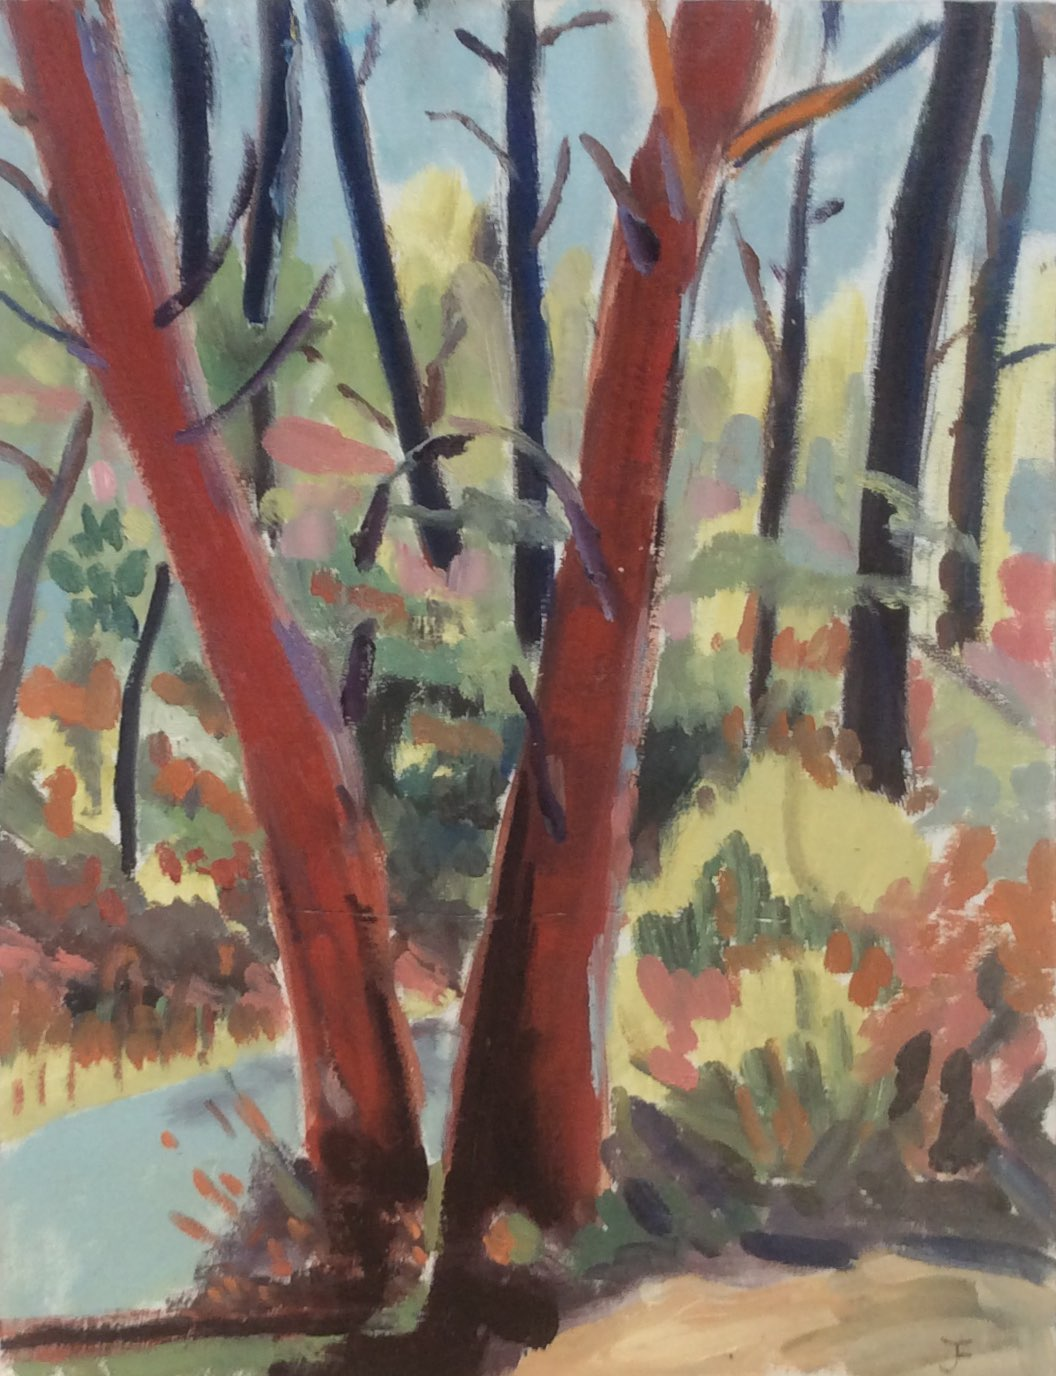 Ochre woods 1 oil 30x40